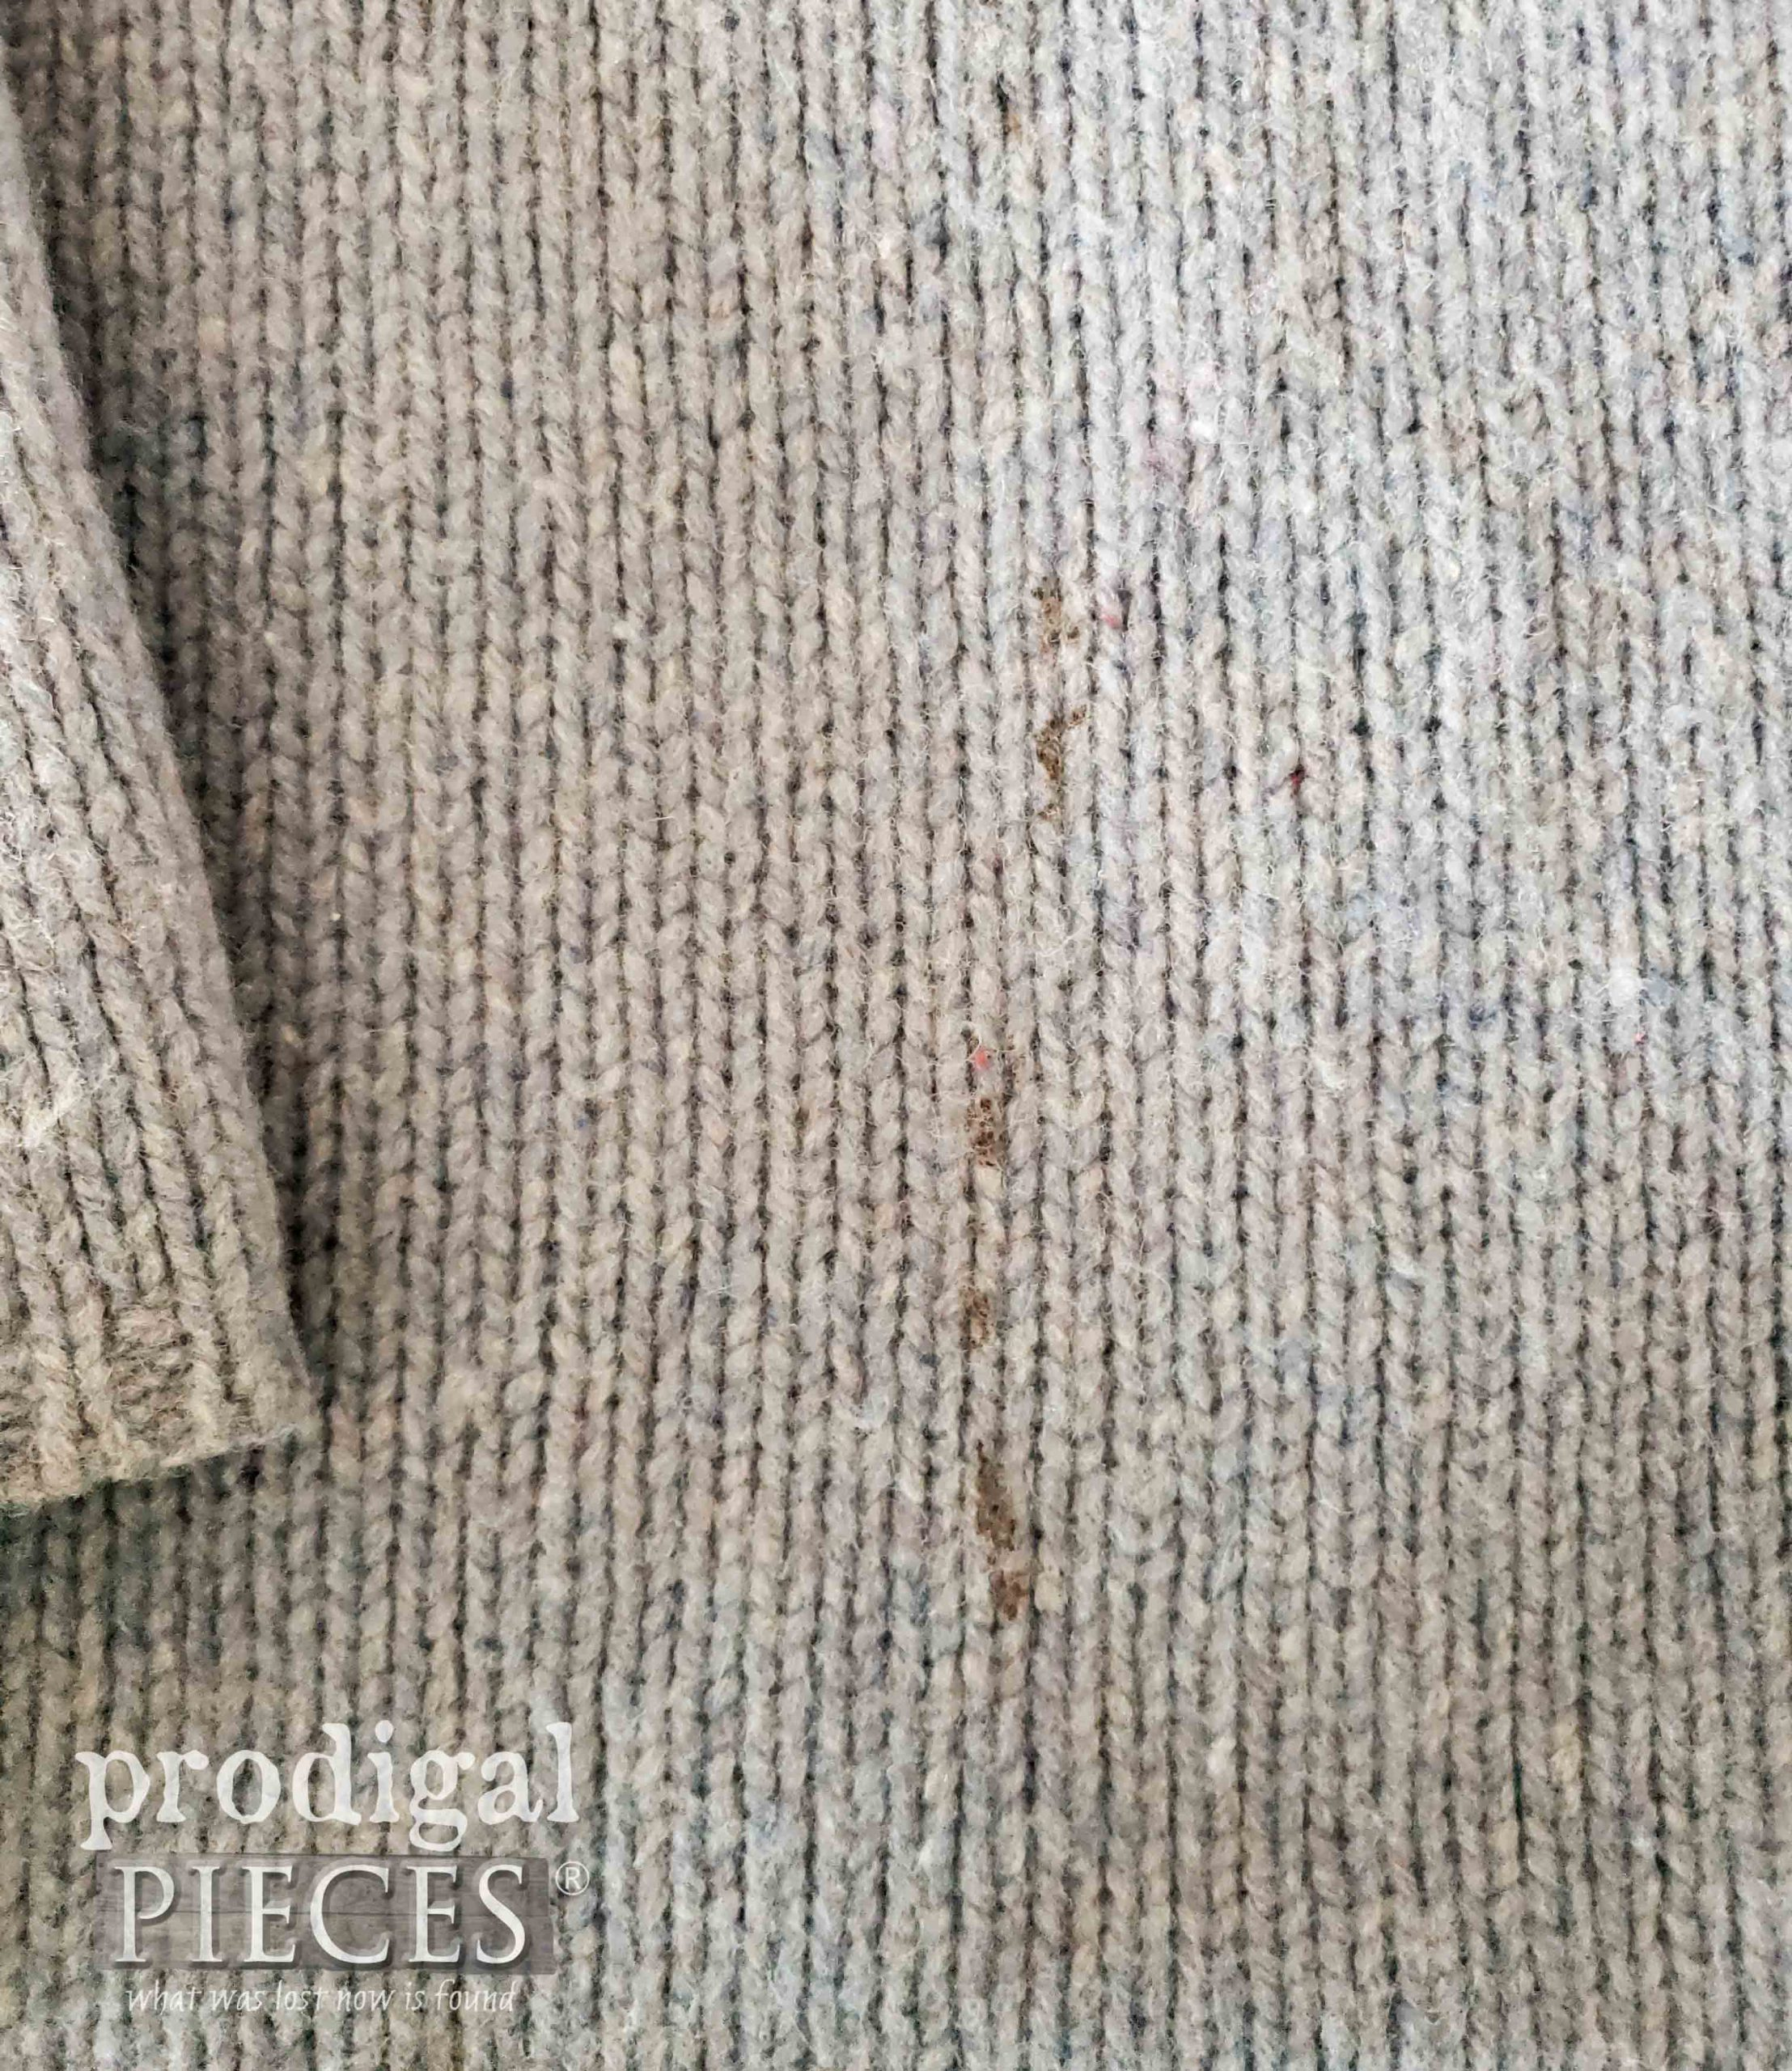 Stained Wool Sweater Perfect for Upcycling | prodigalpieces.com